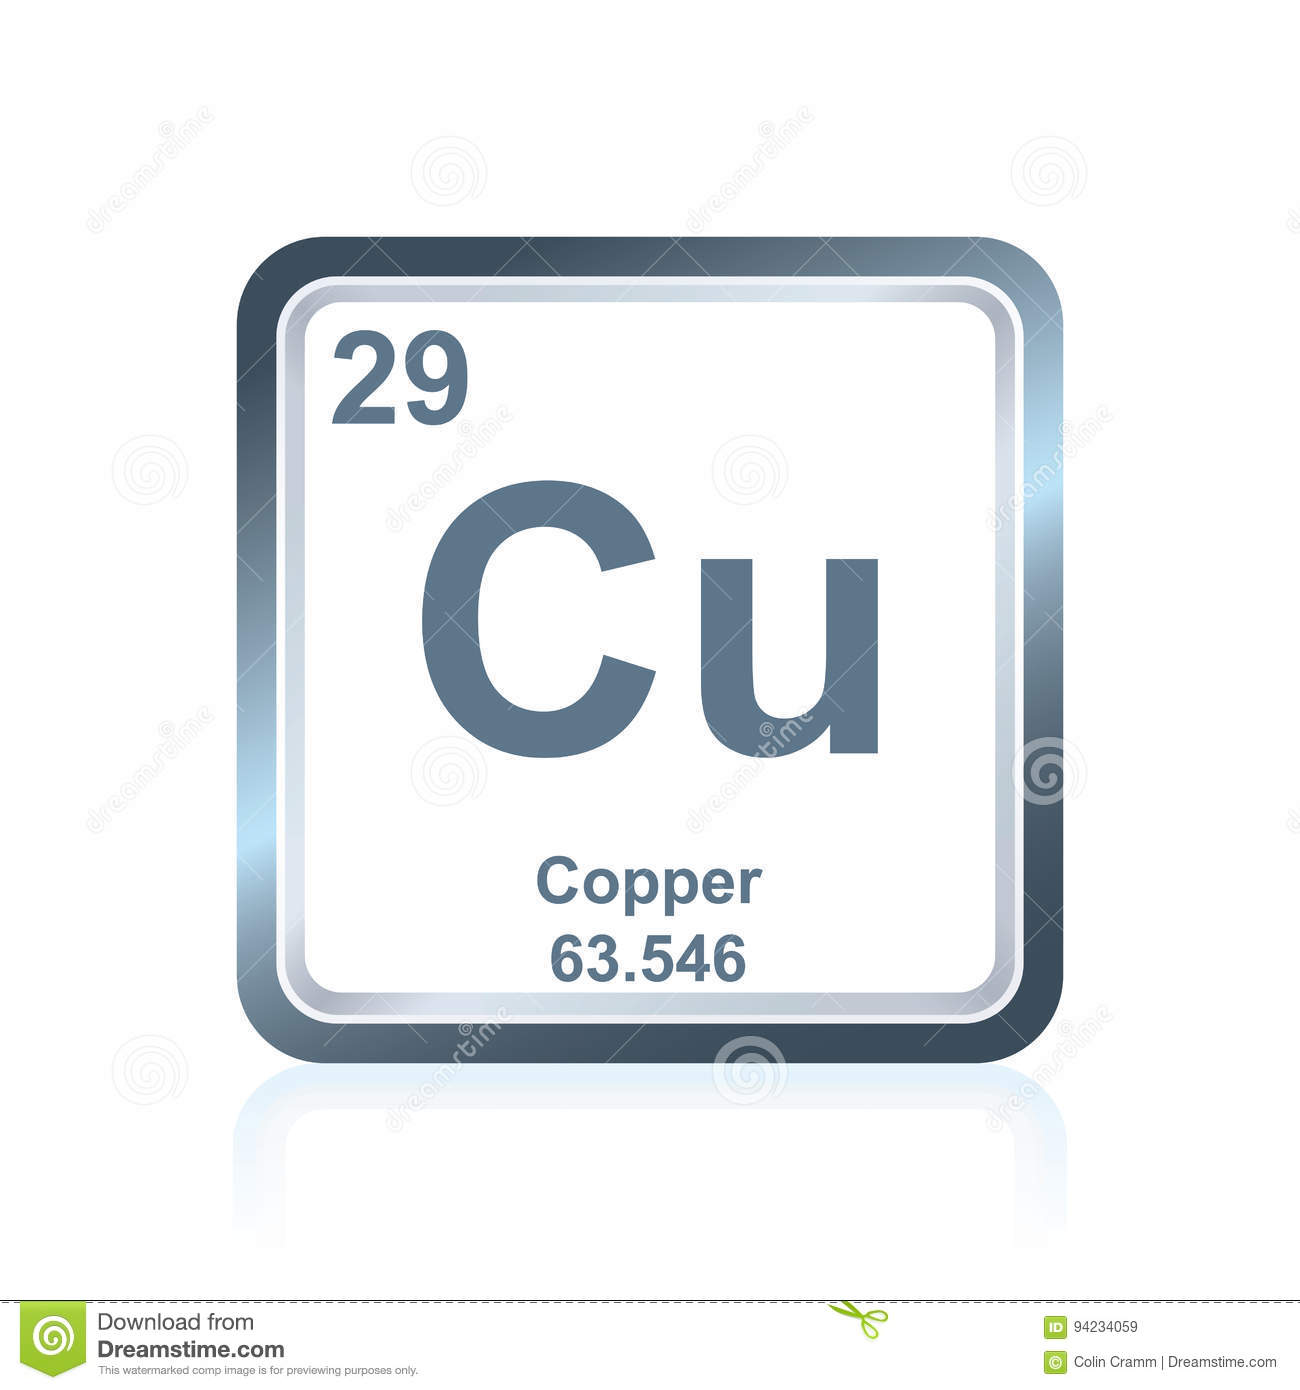 Copper periodic table image collections periodic table images chemical element copper from the periodic table stock illustration royalty free illustration download chemical element copper gamestrikefo Gallery